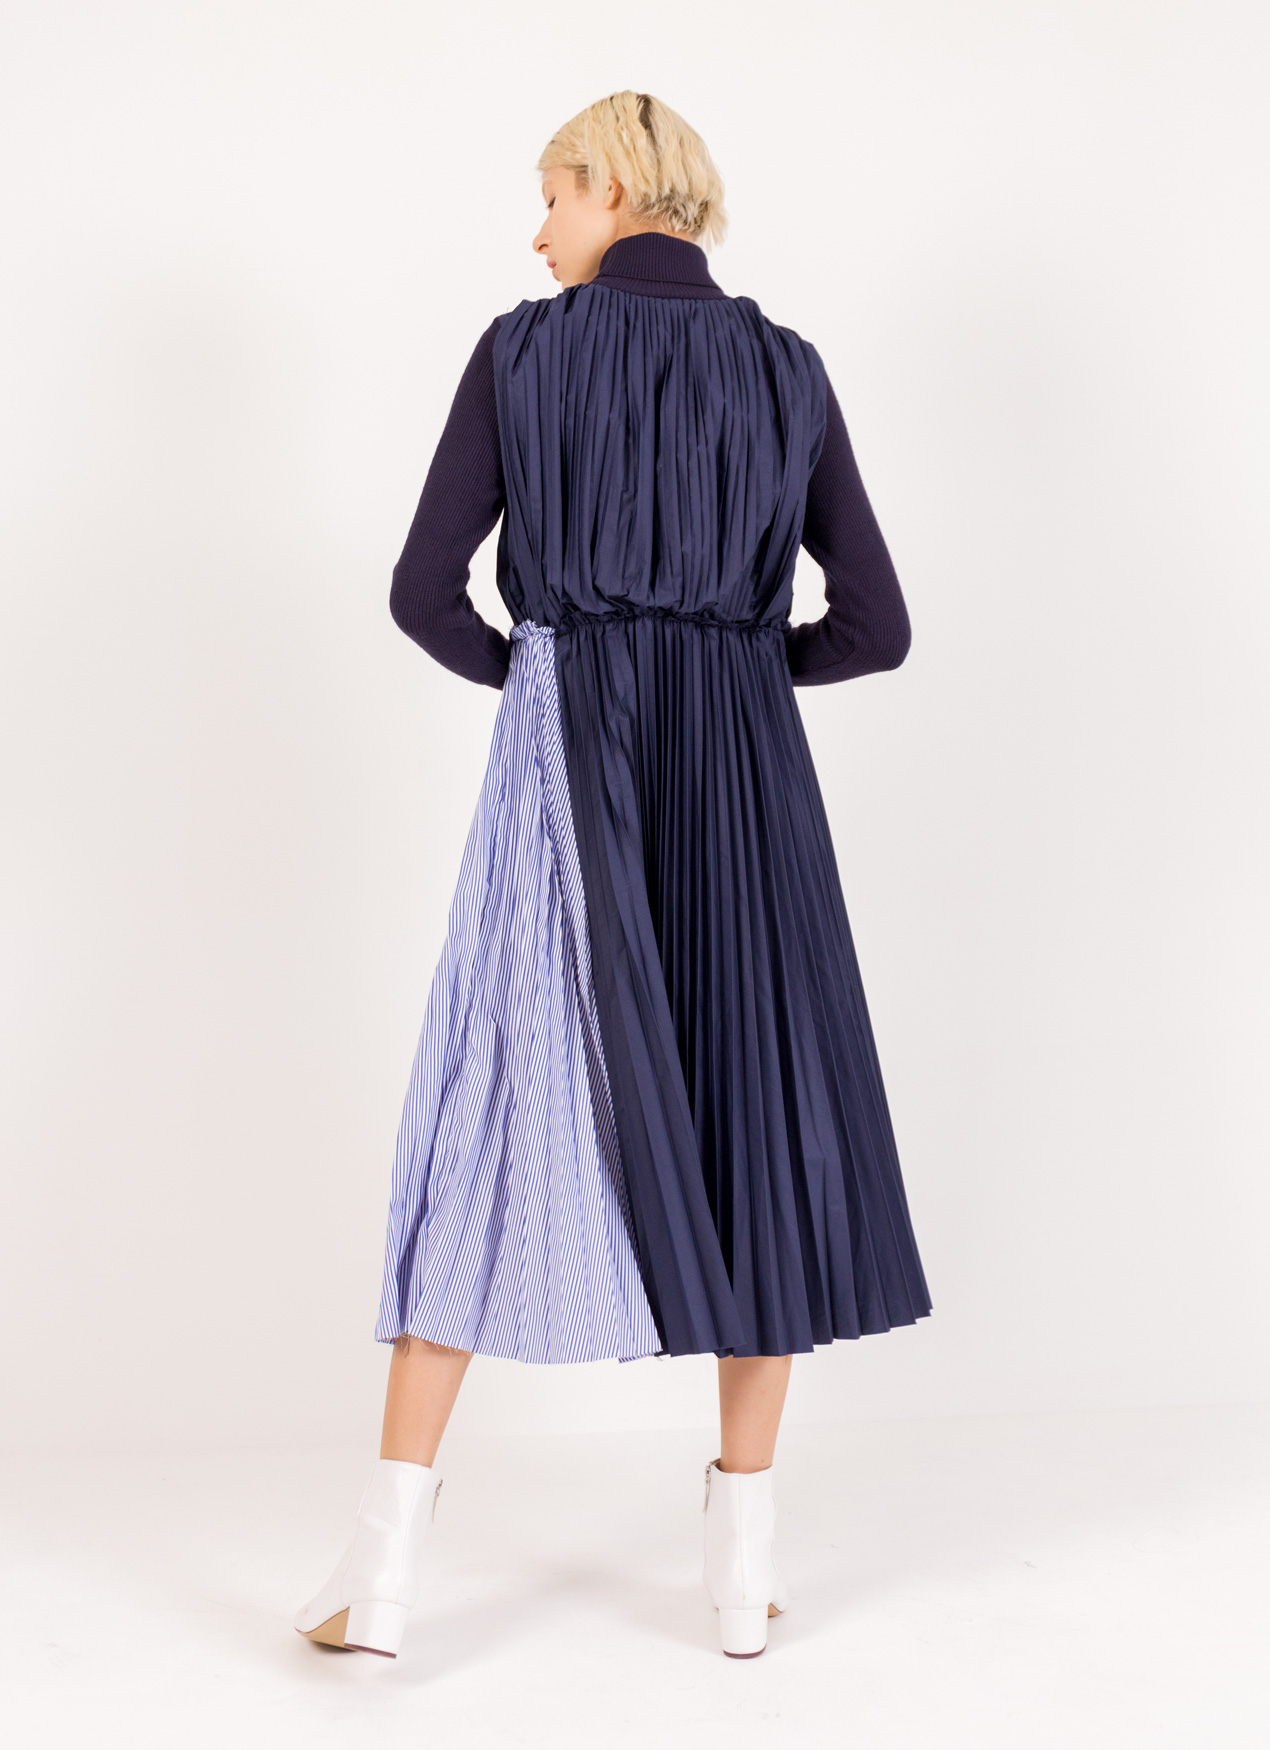 BOWN Meredith Dress - Blue